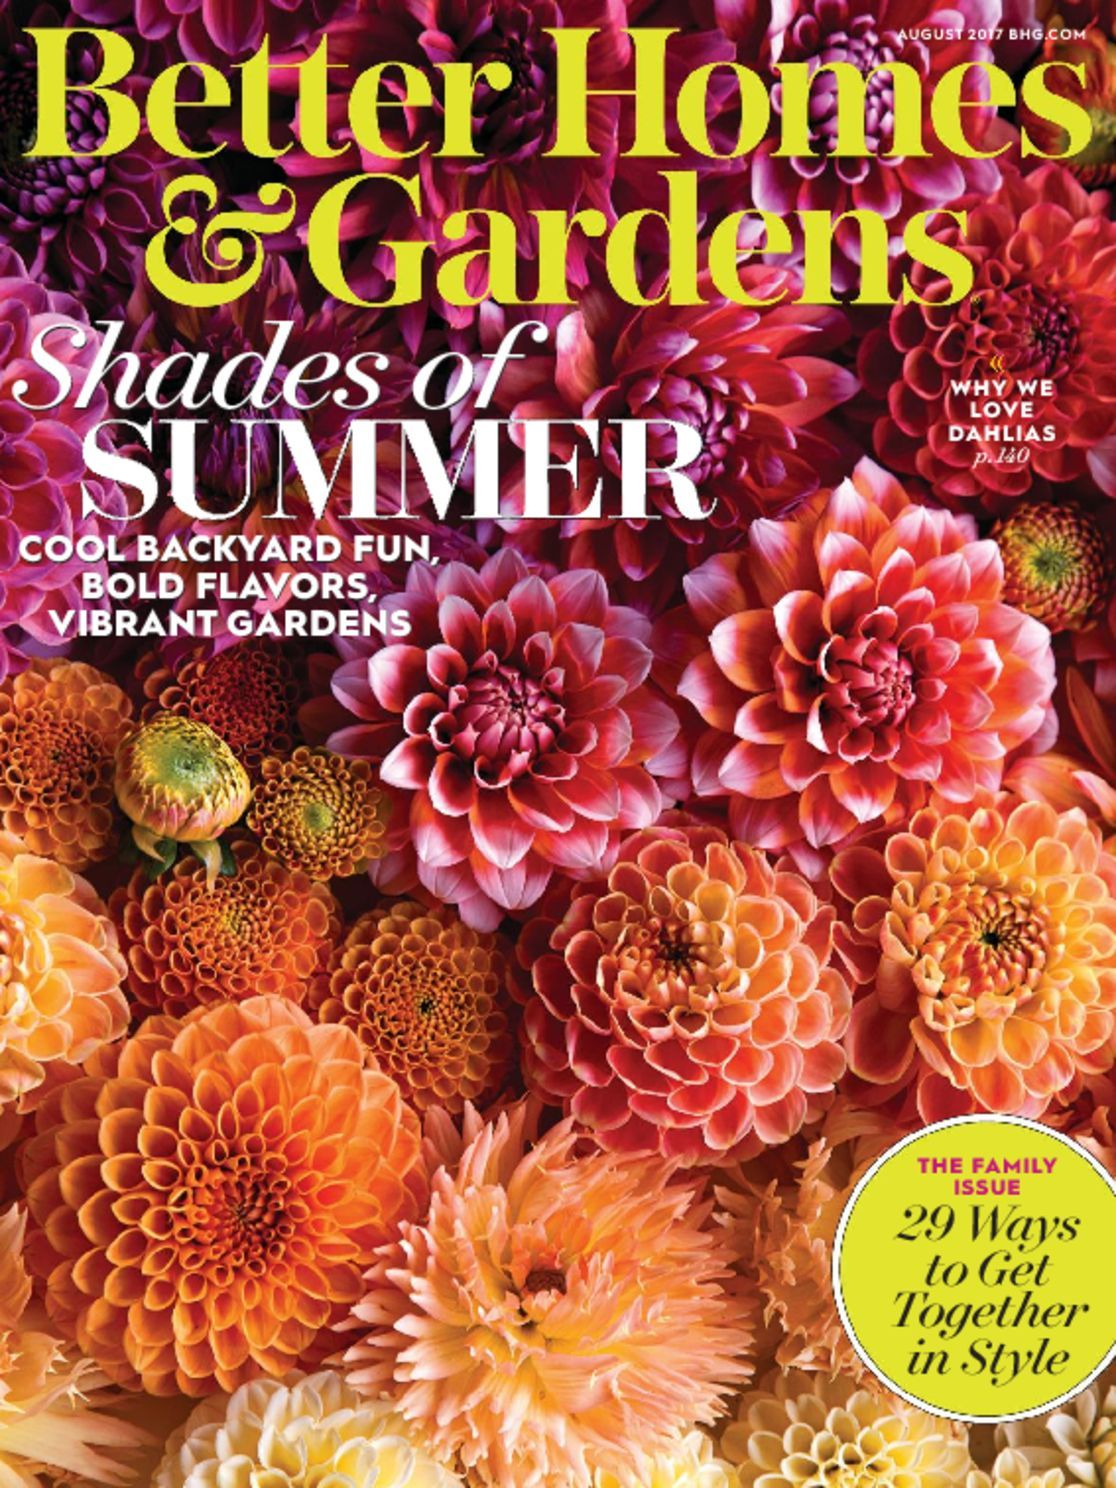 Better Homes Gardens: Better Homes & Gardens Magazine